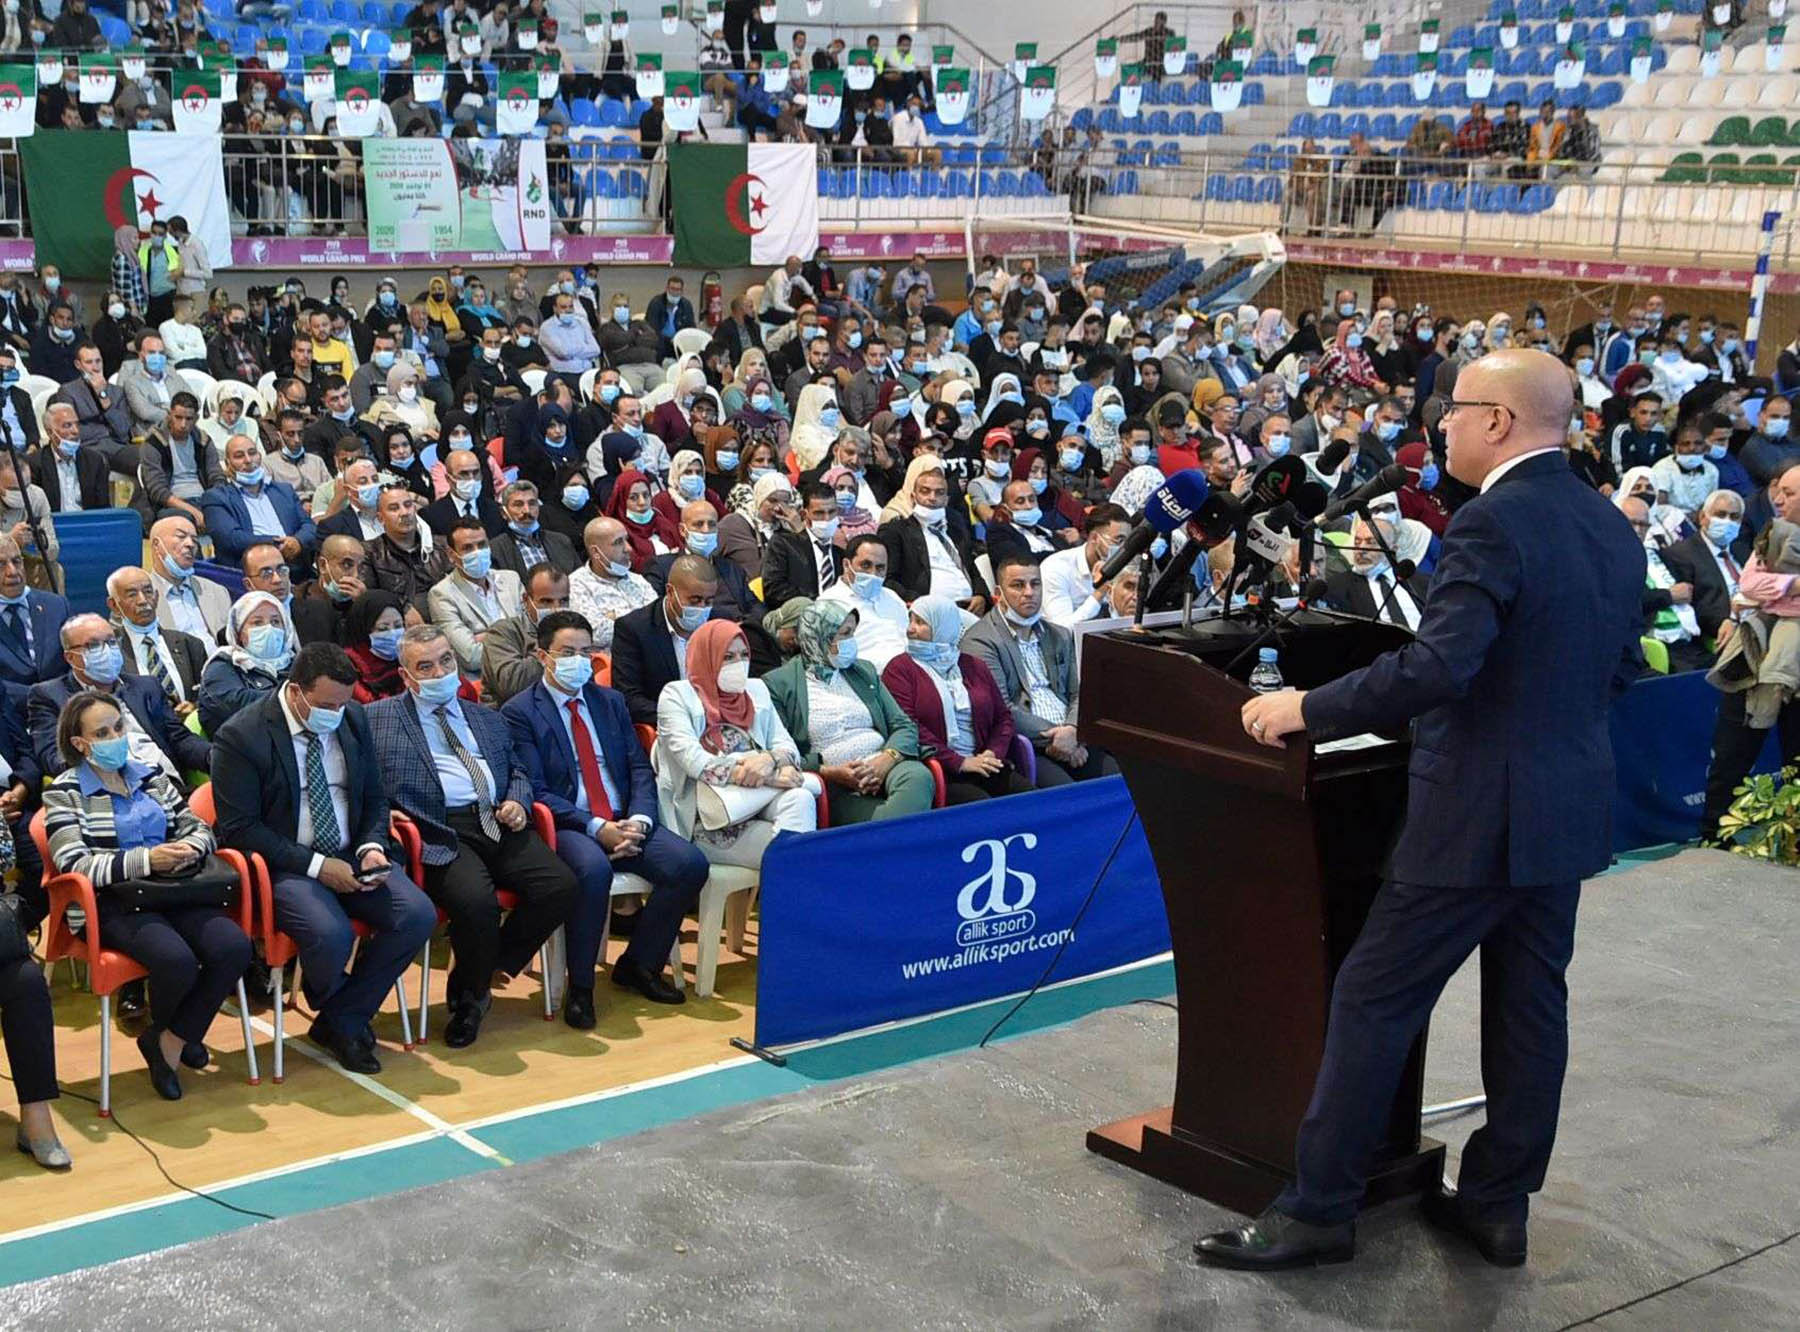 Tayeb Zitouni, the newly-elected secretary-general of the Algerian Democratic National Rally (RND) political party, speaks at an indoor rally in Algiers about the referendum scheduled for November 1. (AFP)